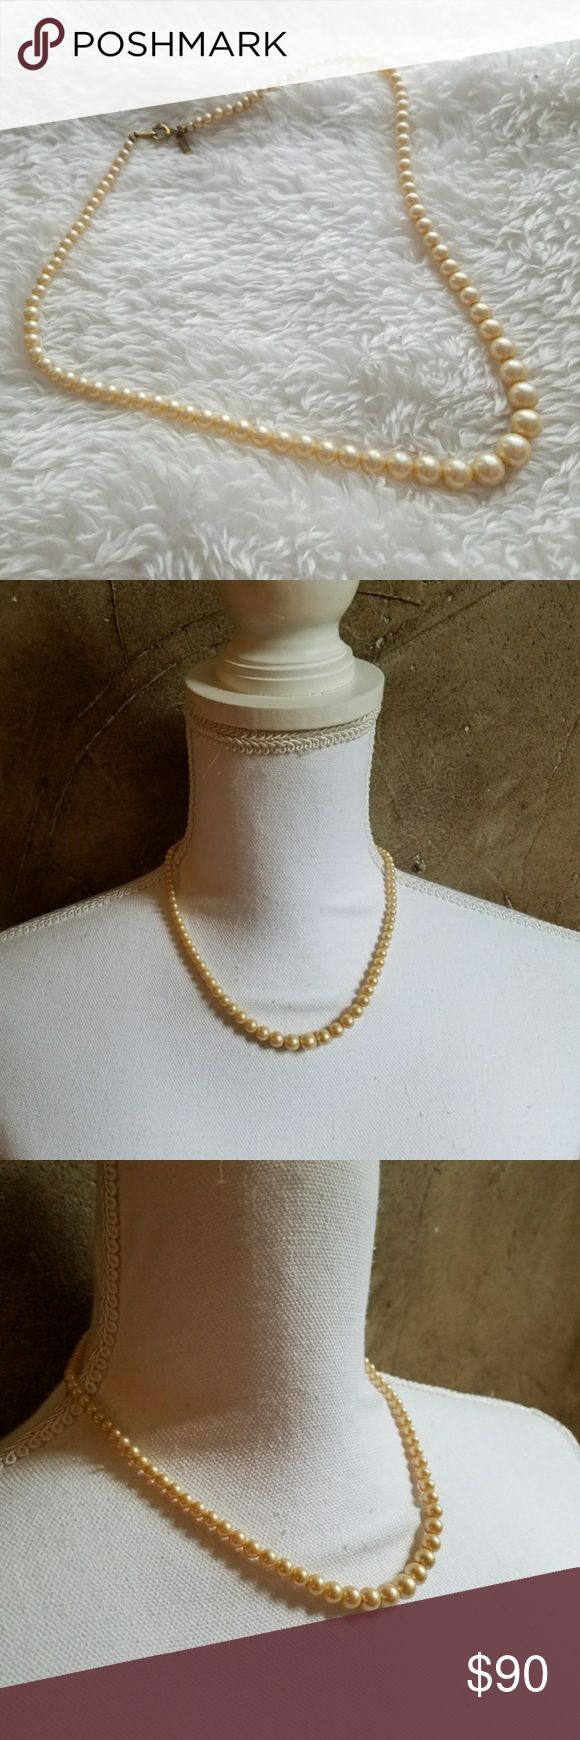 """Marvella 1940s Vintage Cream Pearl Necklace Graduated faux graduated pearl necklace. May be as old as 1940s. The quality of the the glass pearls is evident through the lack of wear and weight of pearls. Pretty pearl necklace perfect for any occasion. I bought this from an estate sale. Hang tag stamped Marvella. Excellent Vintage Condition. Minor signs of wear and needs come cleaning. Perfect for a bride or wedding. Offers welcome. Length 18"""". formal fancy pretty preppy elegant classic preppy…"""